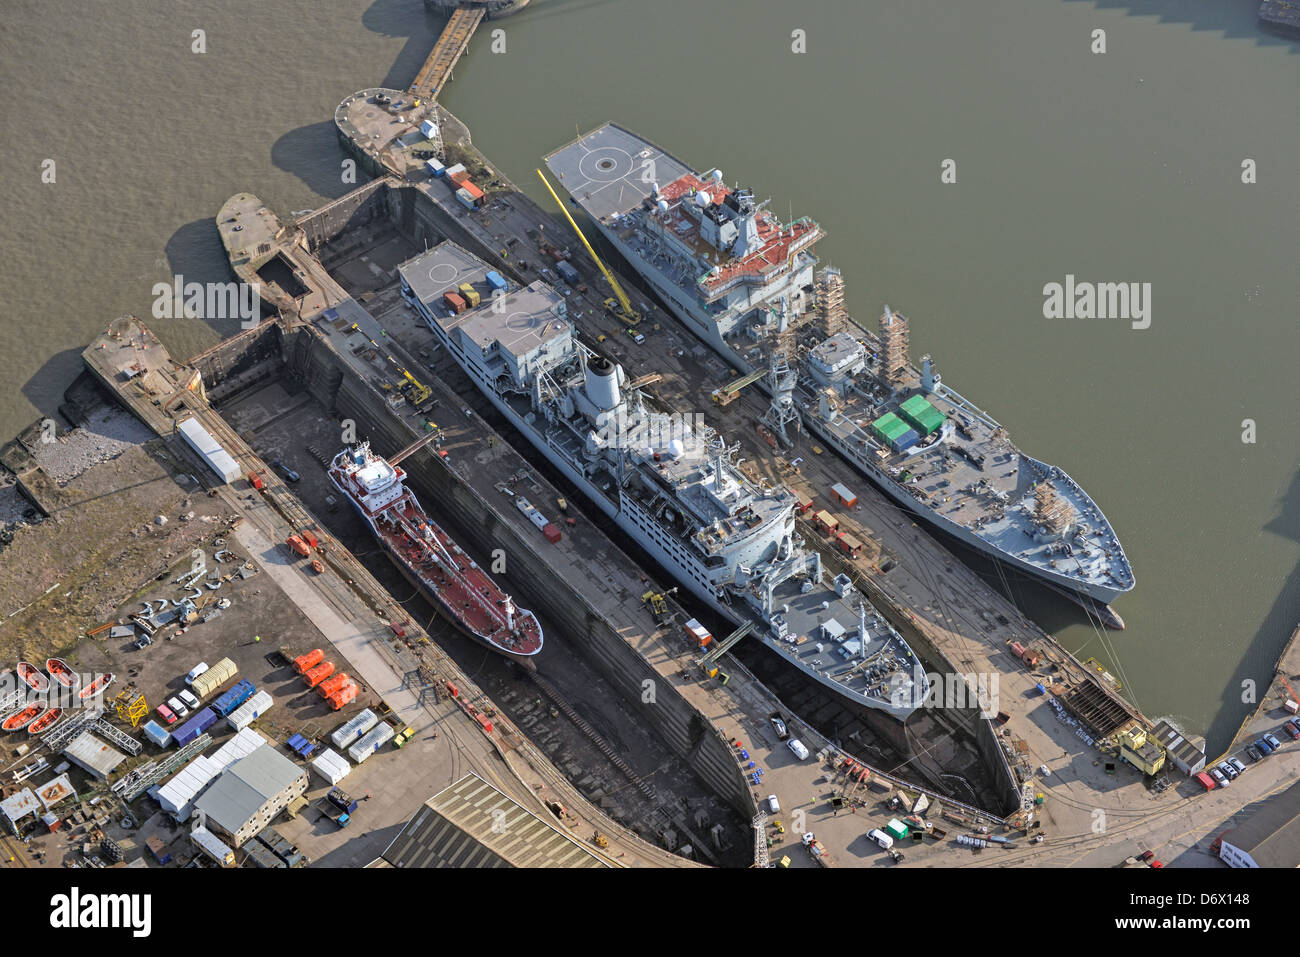 Aerial photograph of Ships in dry dock for repairs in Birkenhead Merseyside. Cammell Laird Shipyard - Stock Image